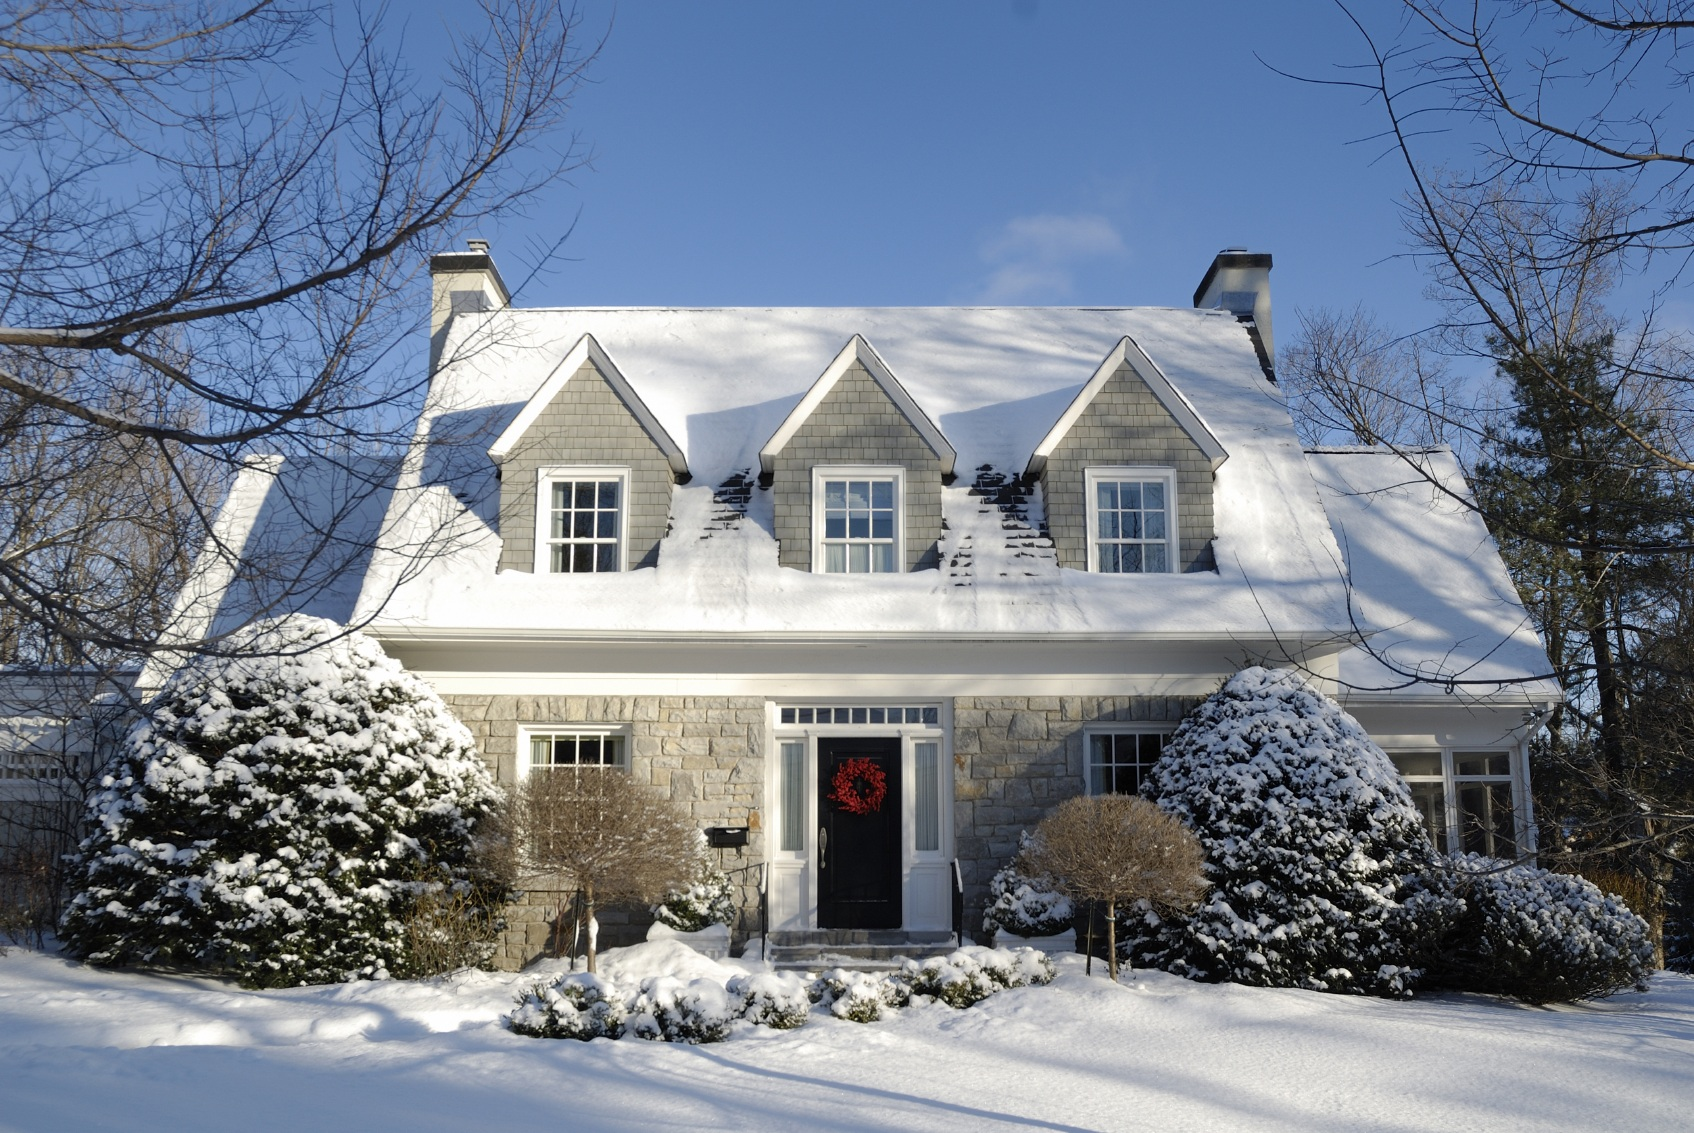 Decorating Home Ideas On A Low Budget Winter Home Tips You Should Know 15 Tips Ideas